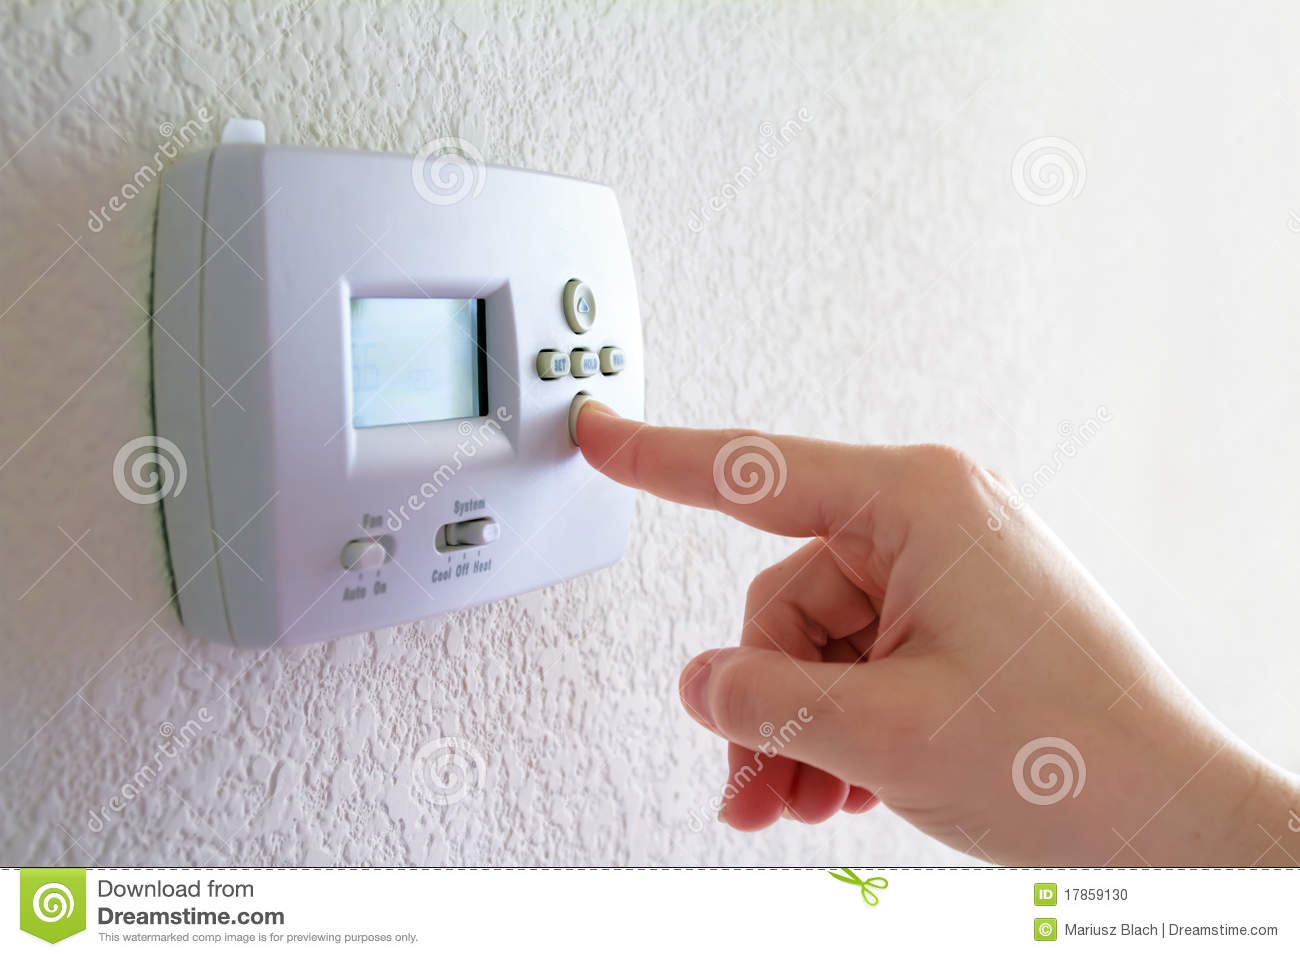 Thermostat and human hand